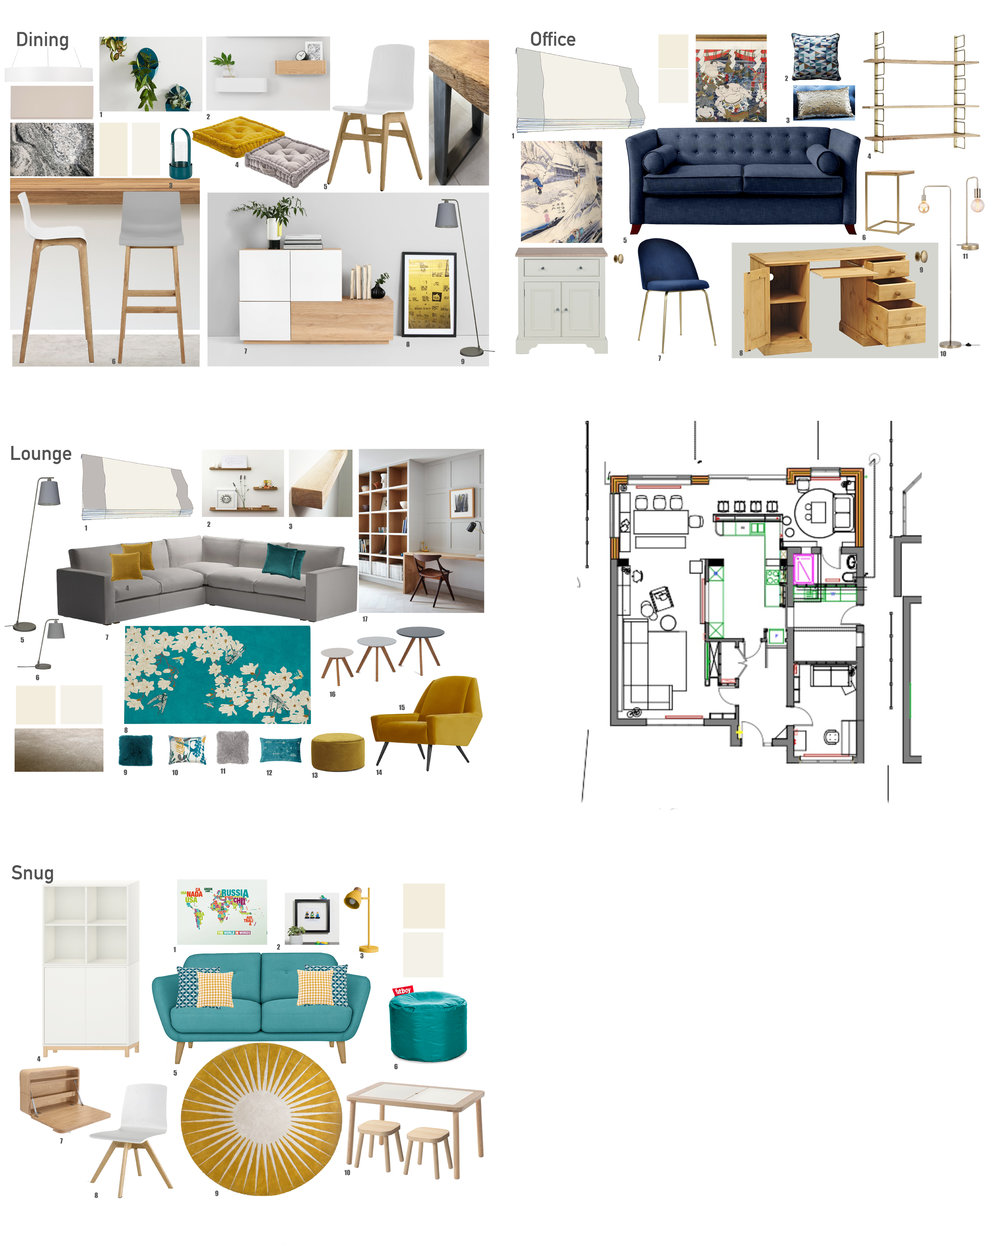 Digital itemised mood board for each room of a family home with a scaled floor plan.